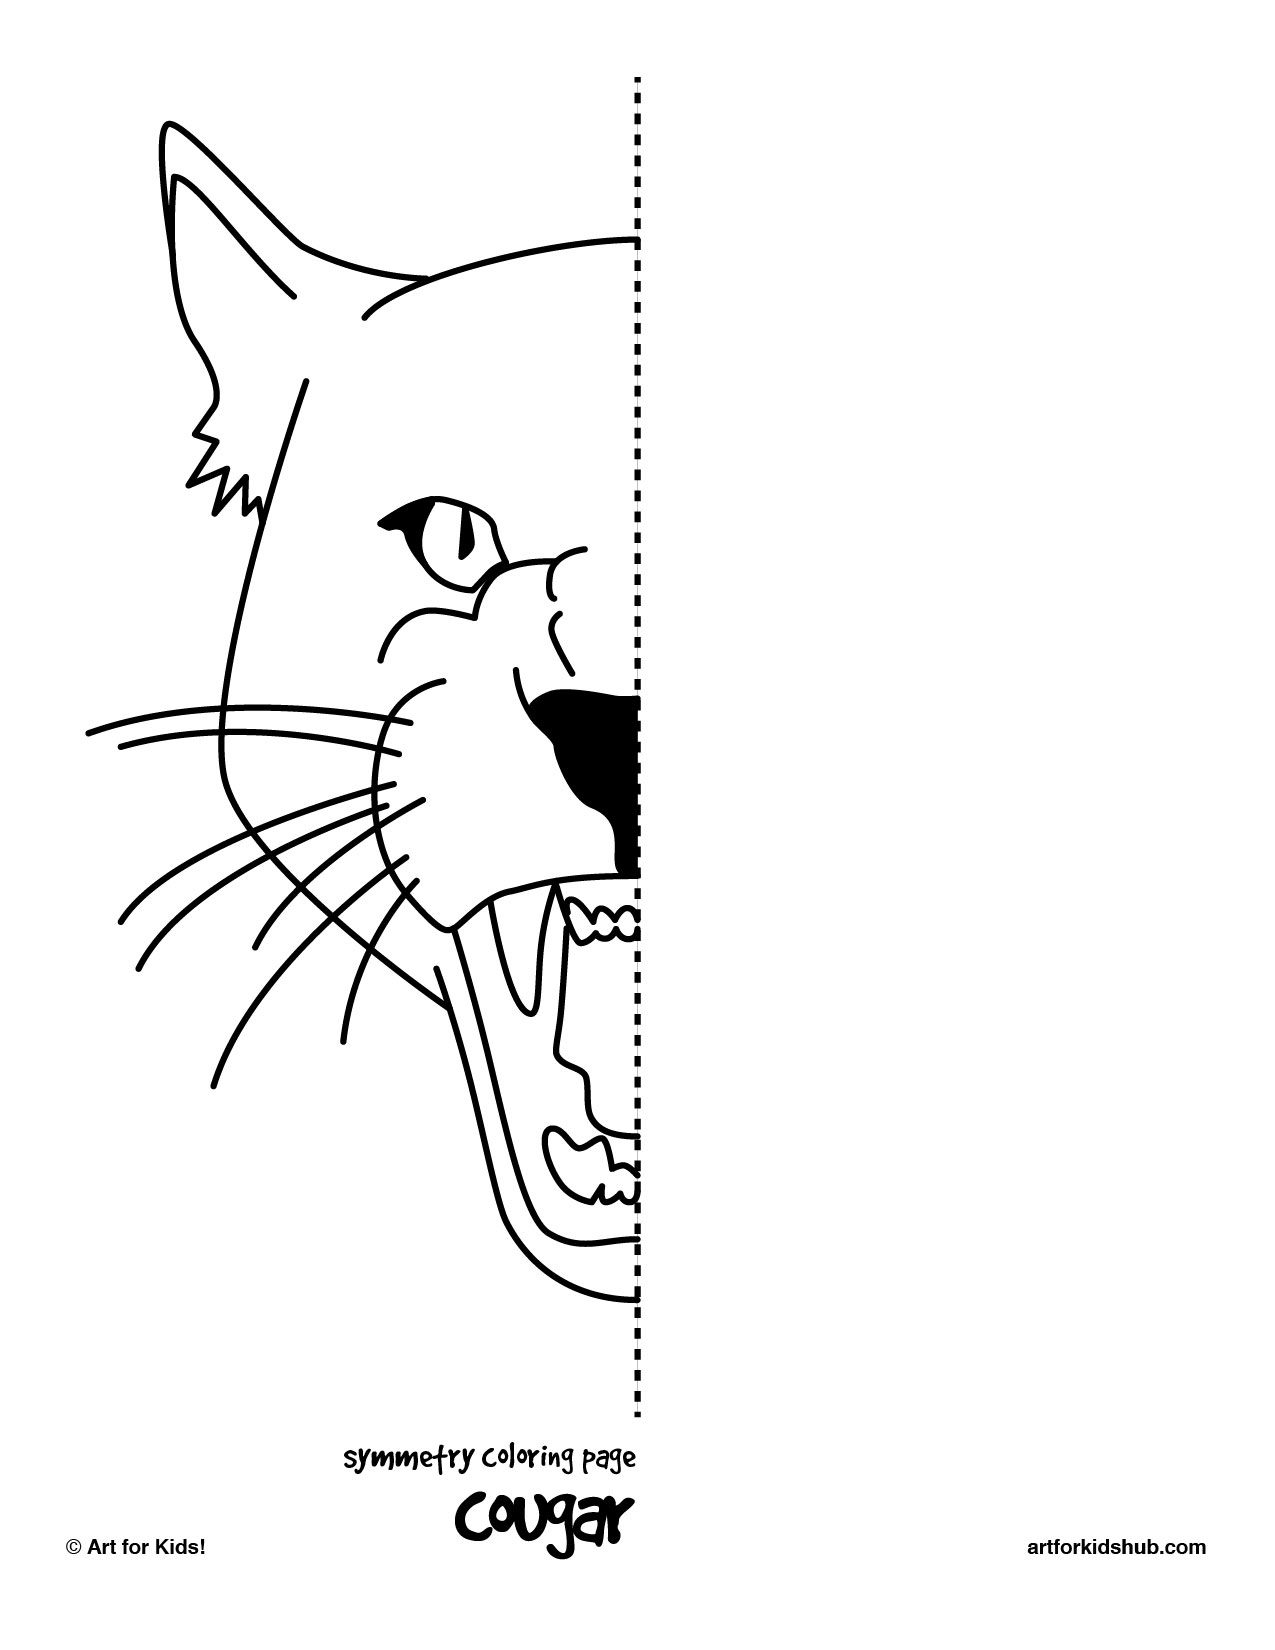 worksheet Draw The Other Half Of The Picture Worksheet printable drawing activities at getdrawings com free for personal 1275x1650 vale design maze